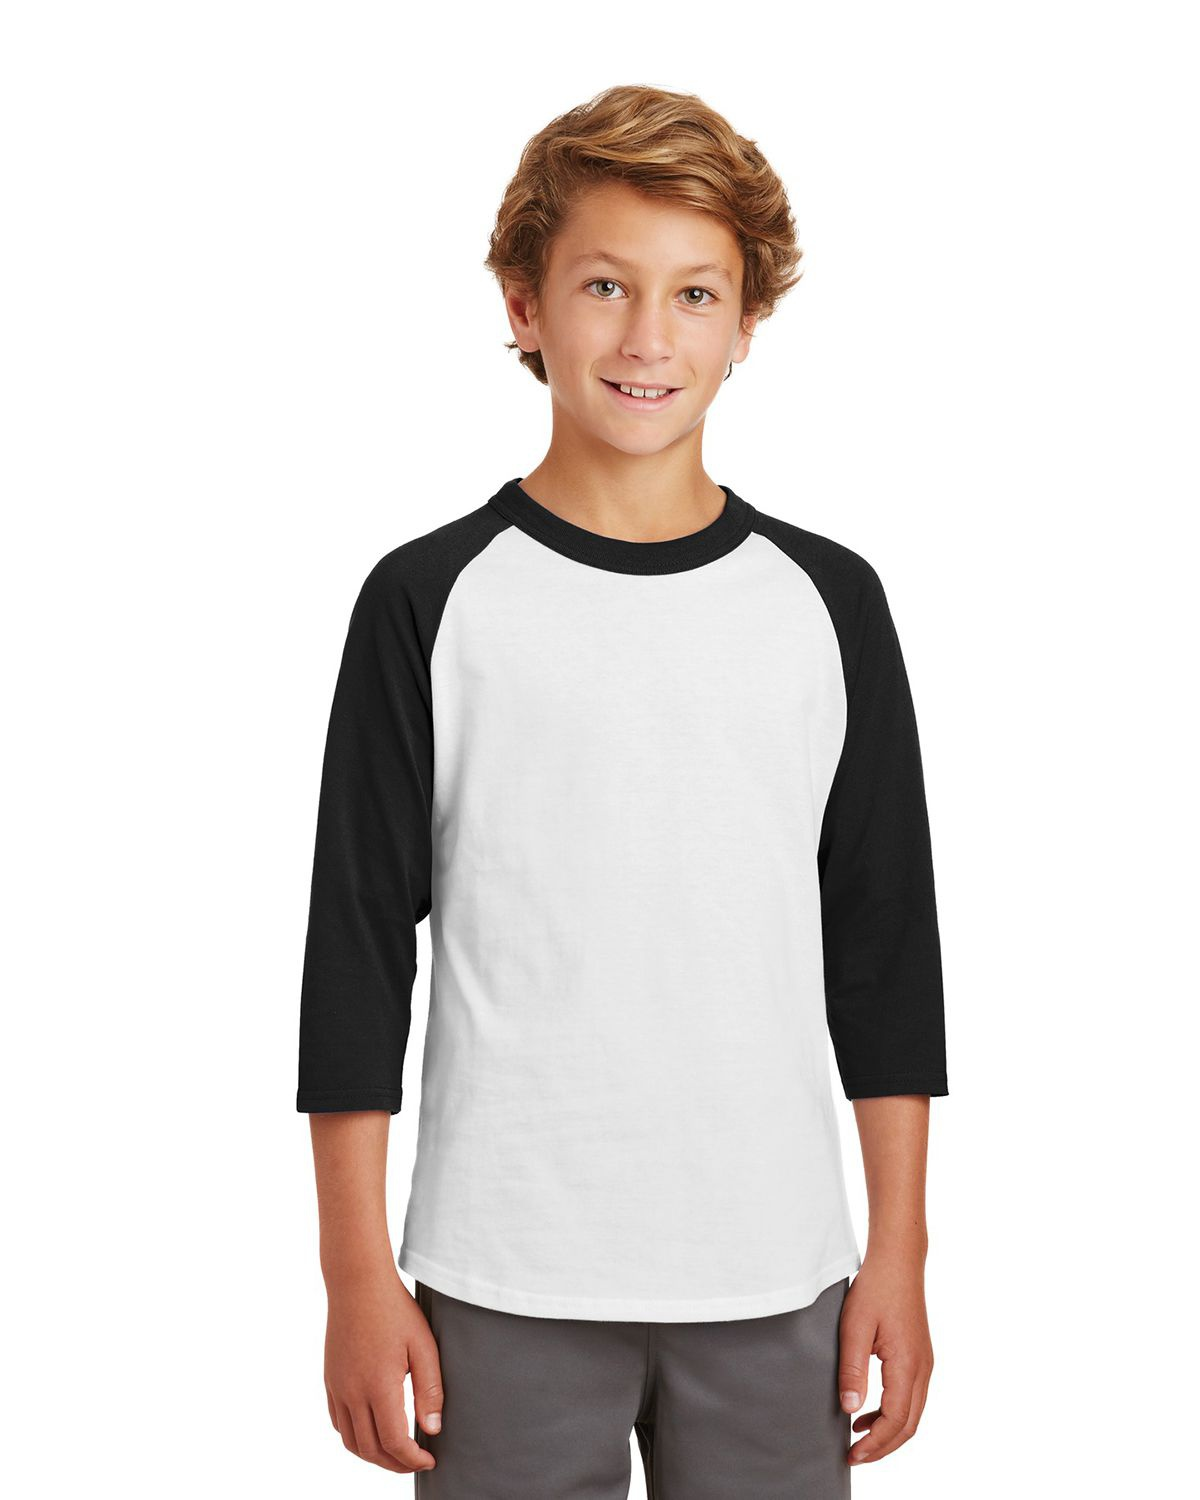 'Sport Tek YT200 Youth Colorblock Raglan Jersey'